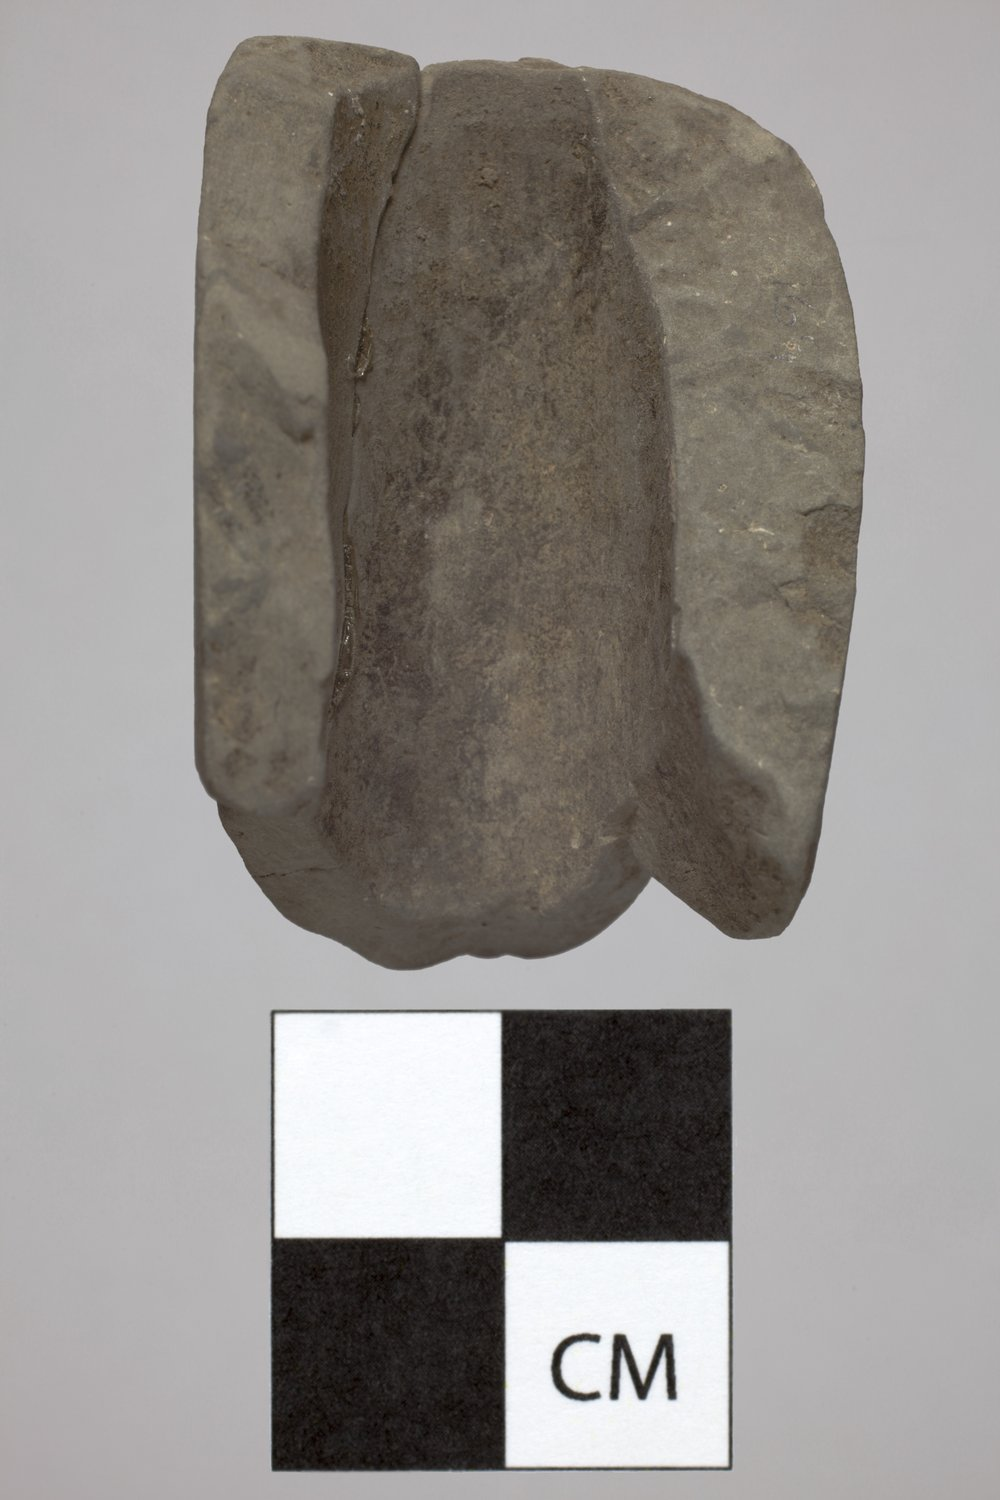 Ceramic Pipe from the Radio Lane Site, 14CO385 - 2